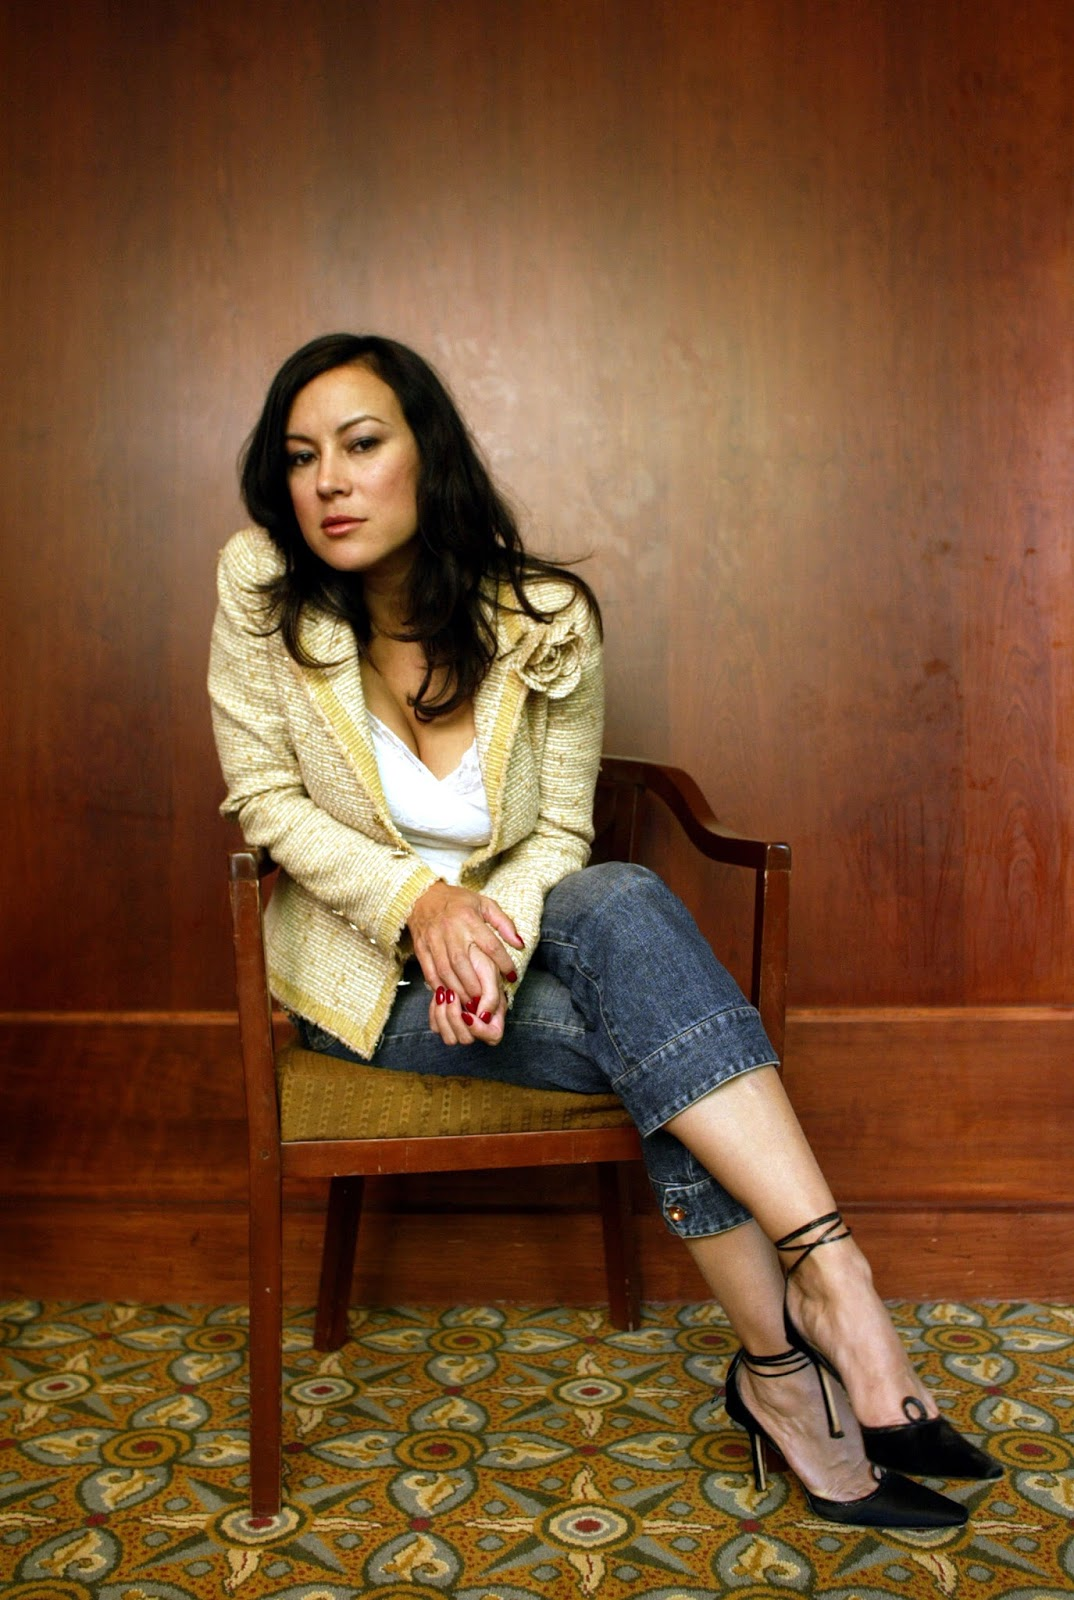 7. Pemain Poker Hot - Jennifer Tilly paki jeans